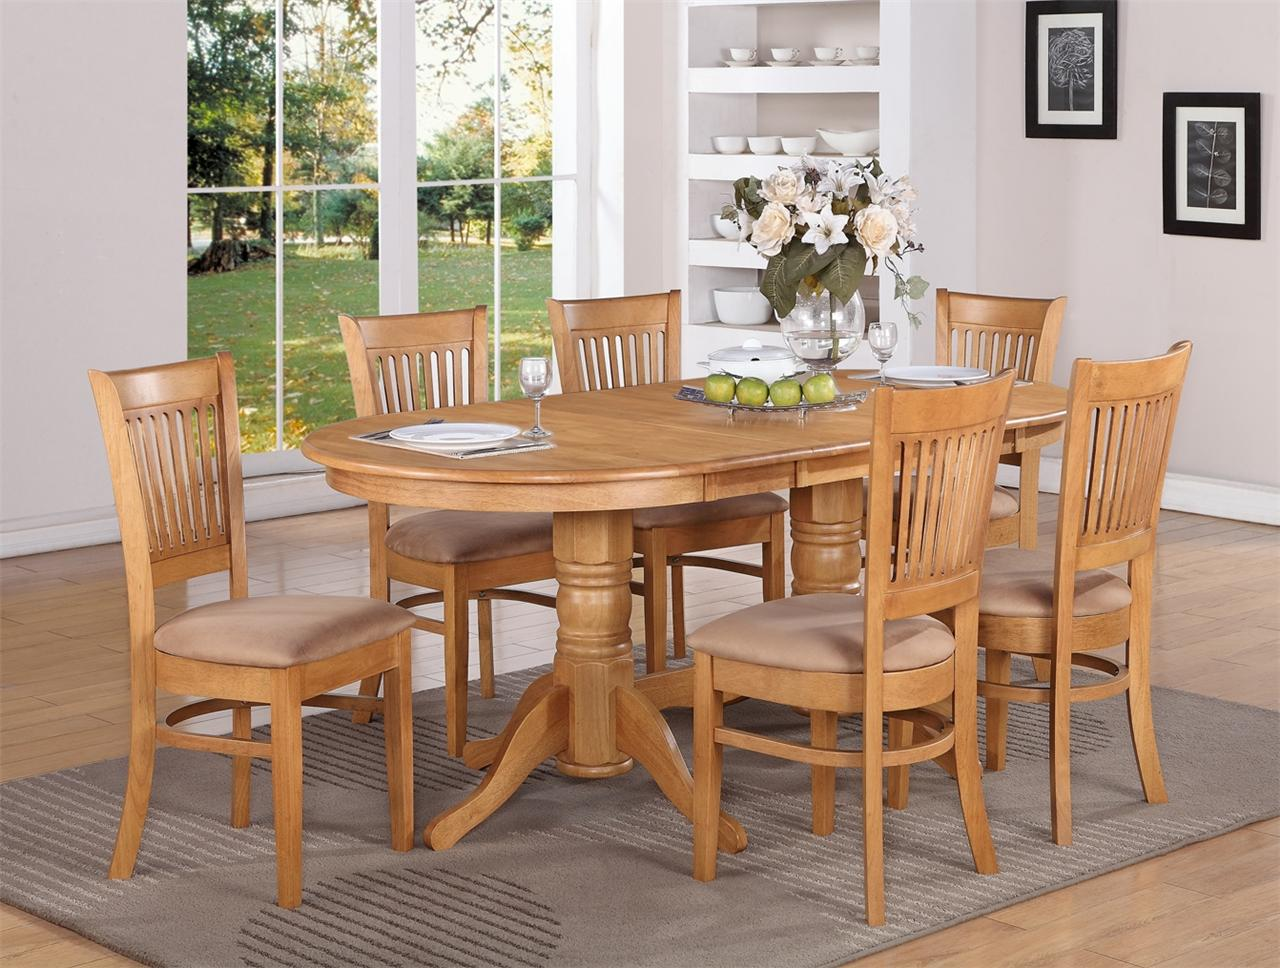 7 pc vancouver oval dinette kitchen dining table w 6 for Dining table set